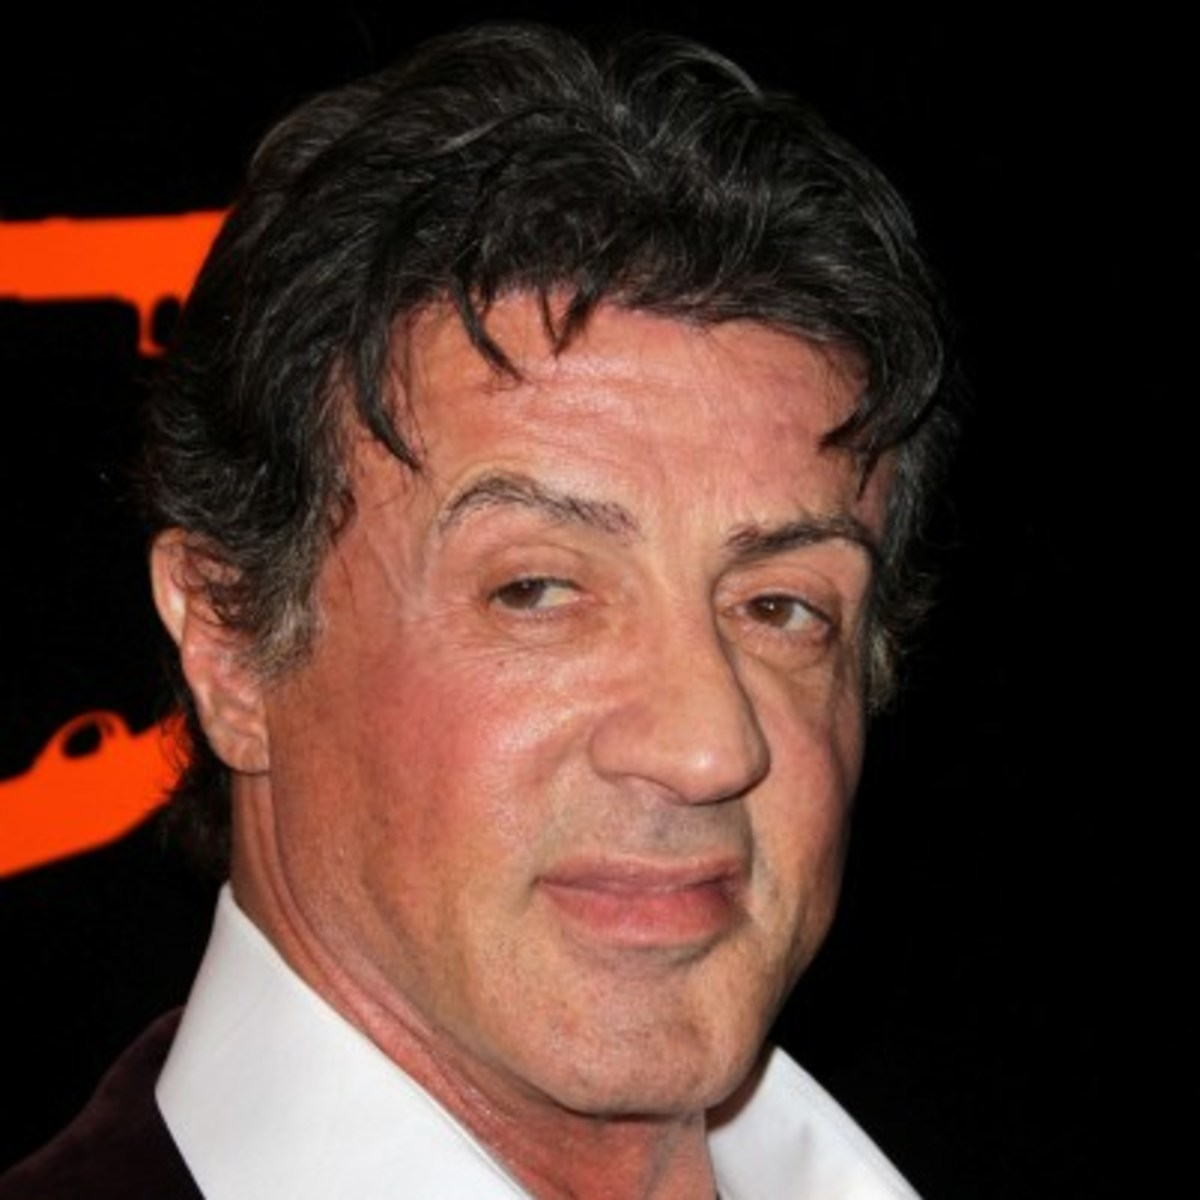 sylvester stallone film actor screenwriter actor director sylvester stallone film actor screenwriter actor director producer com